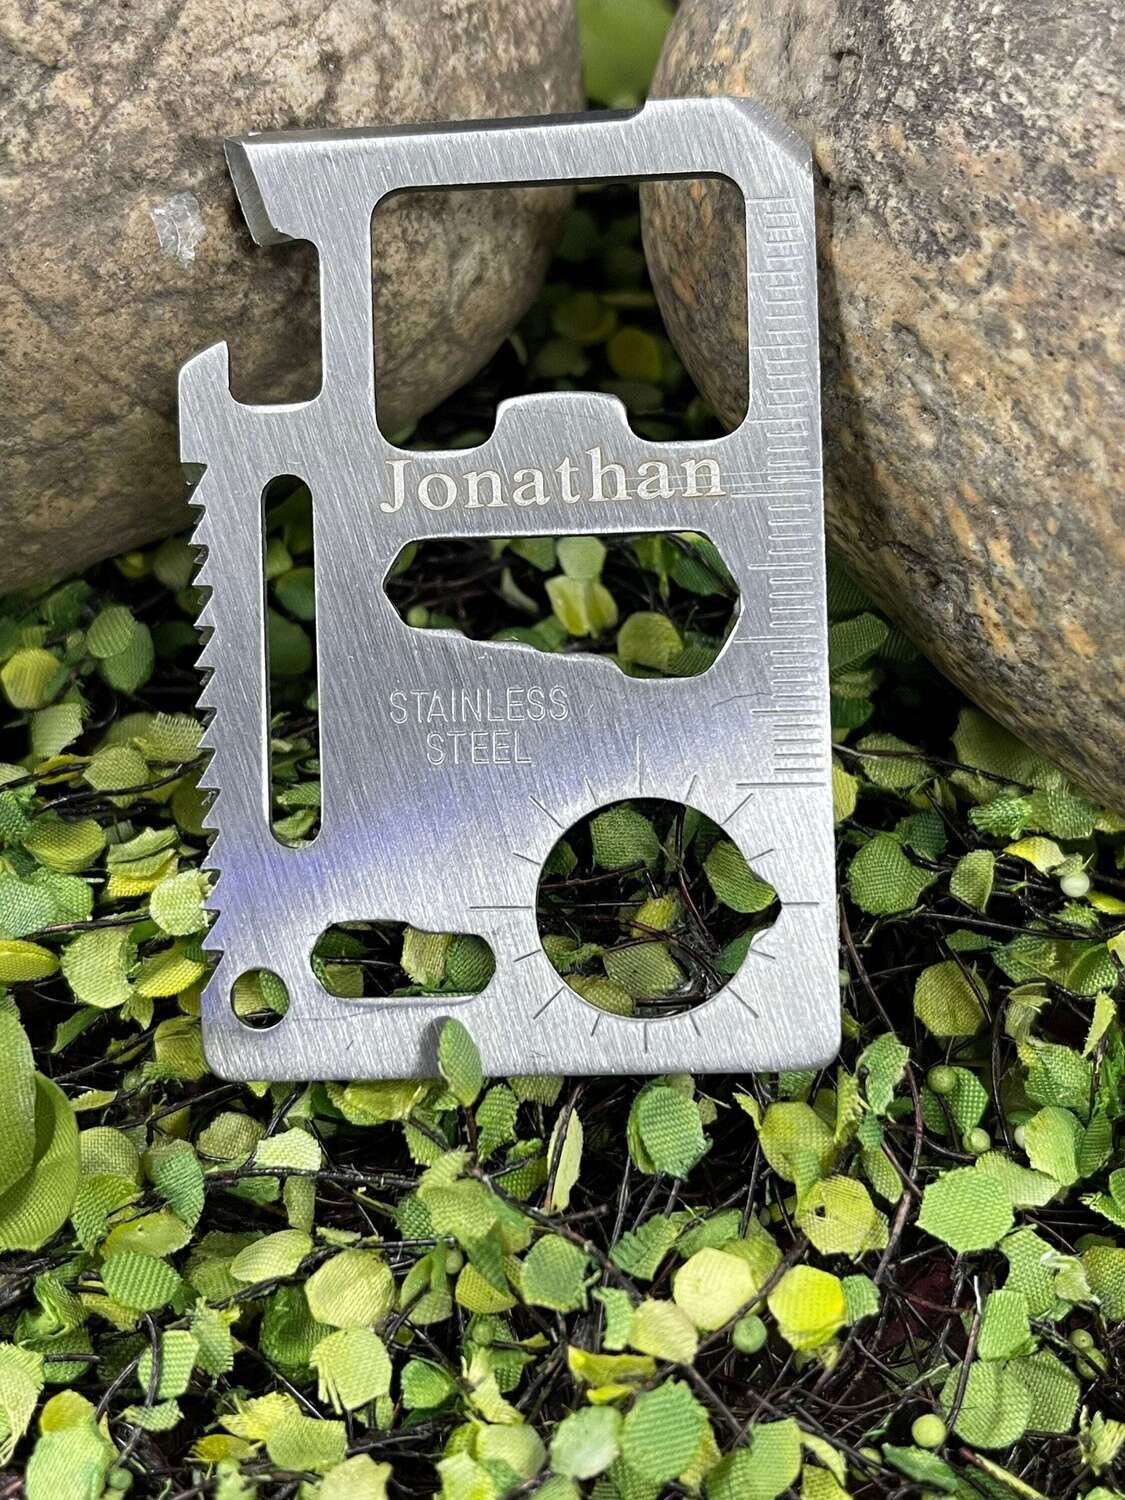 Groomsman gift, Personalized Survival Wallet Pocket Tool, Credit Card Size, Wedding Party, Bridal Party, Laser Engraved, Utility Tool